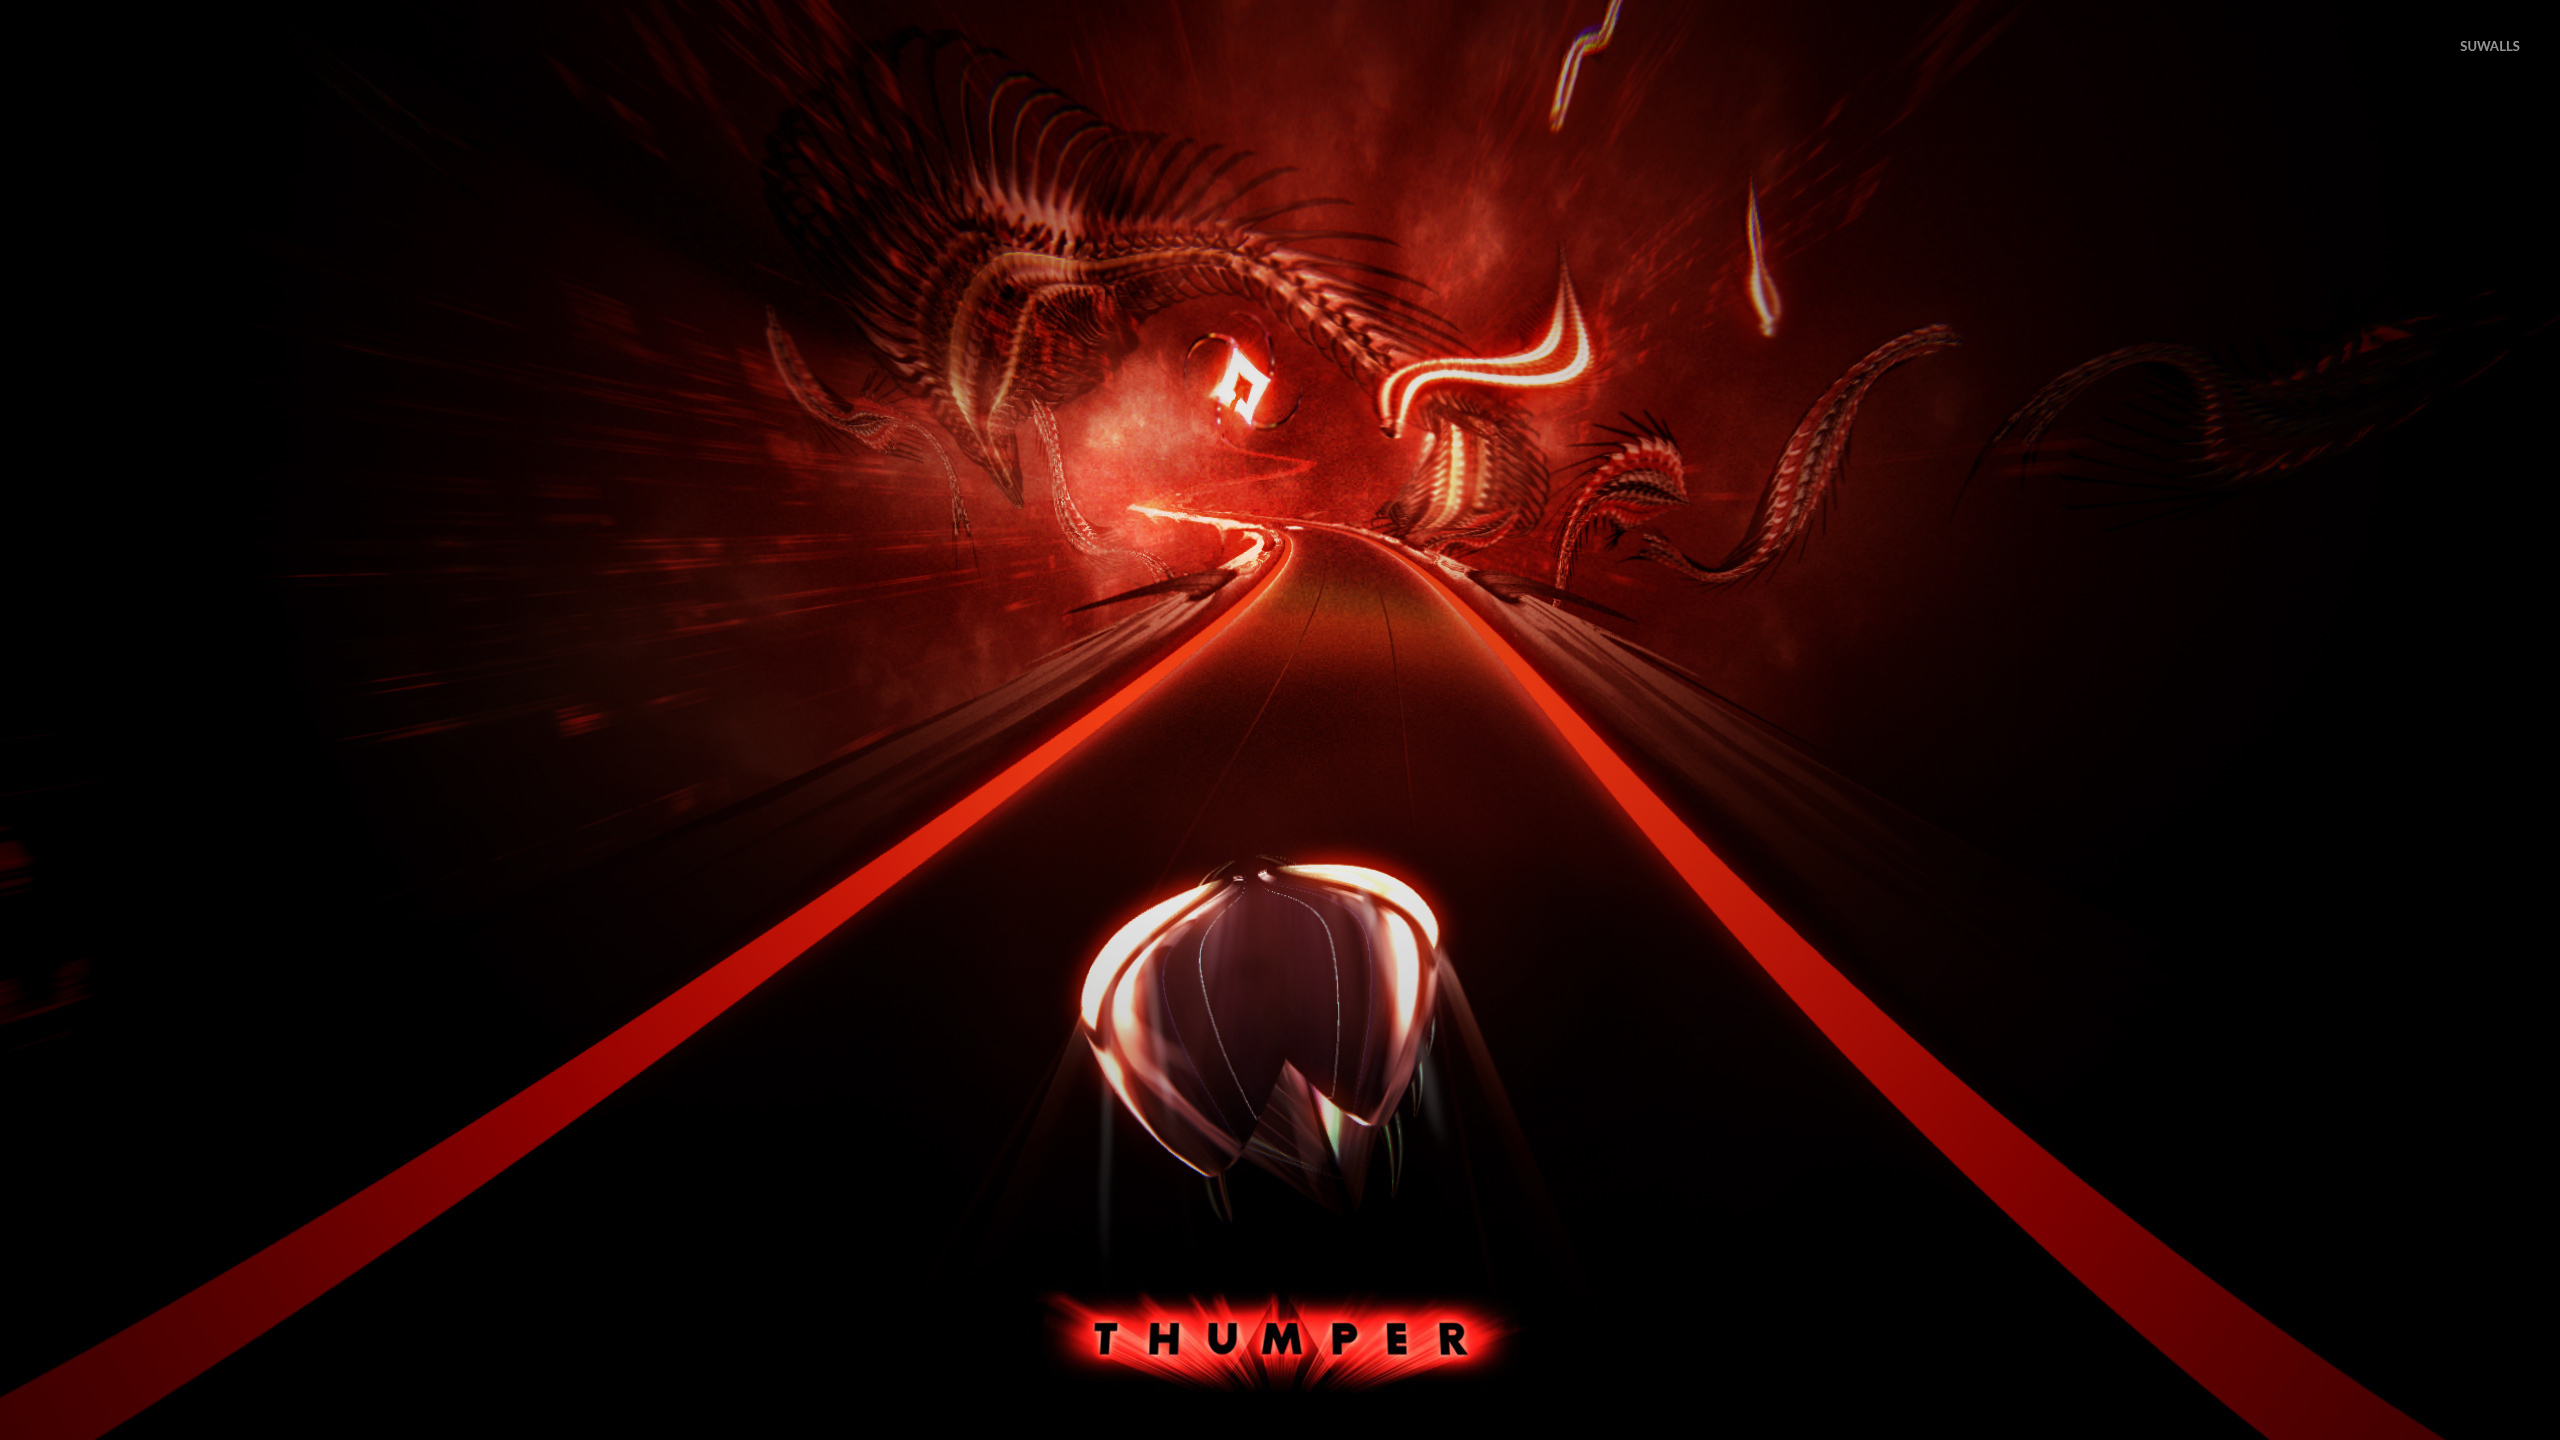 Space beetle speeding on the red road in thumper wallpaper game space beetle speeding on the red road in thumper wallpaper voltagebd Image collections